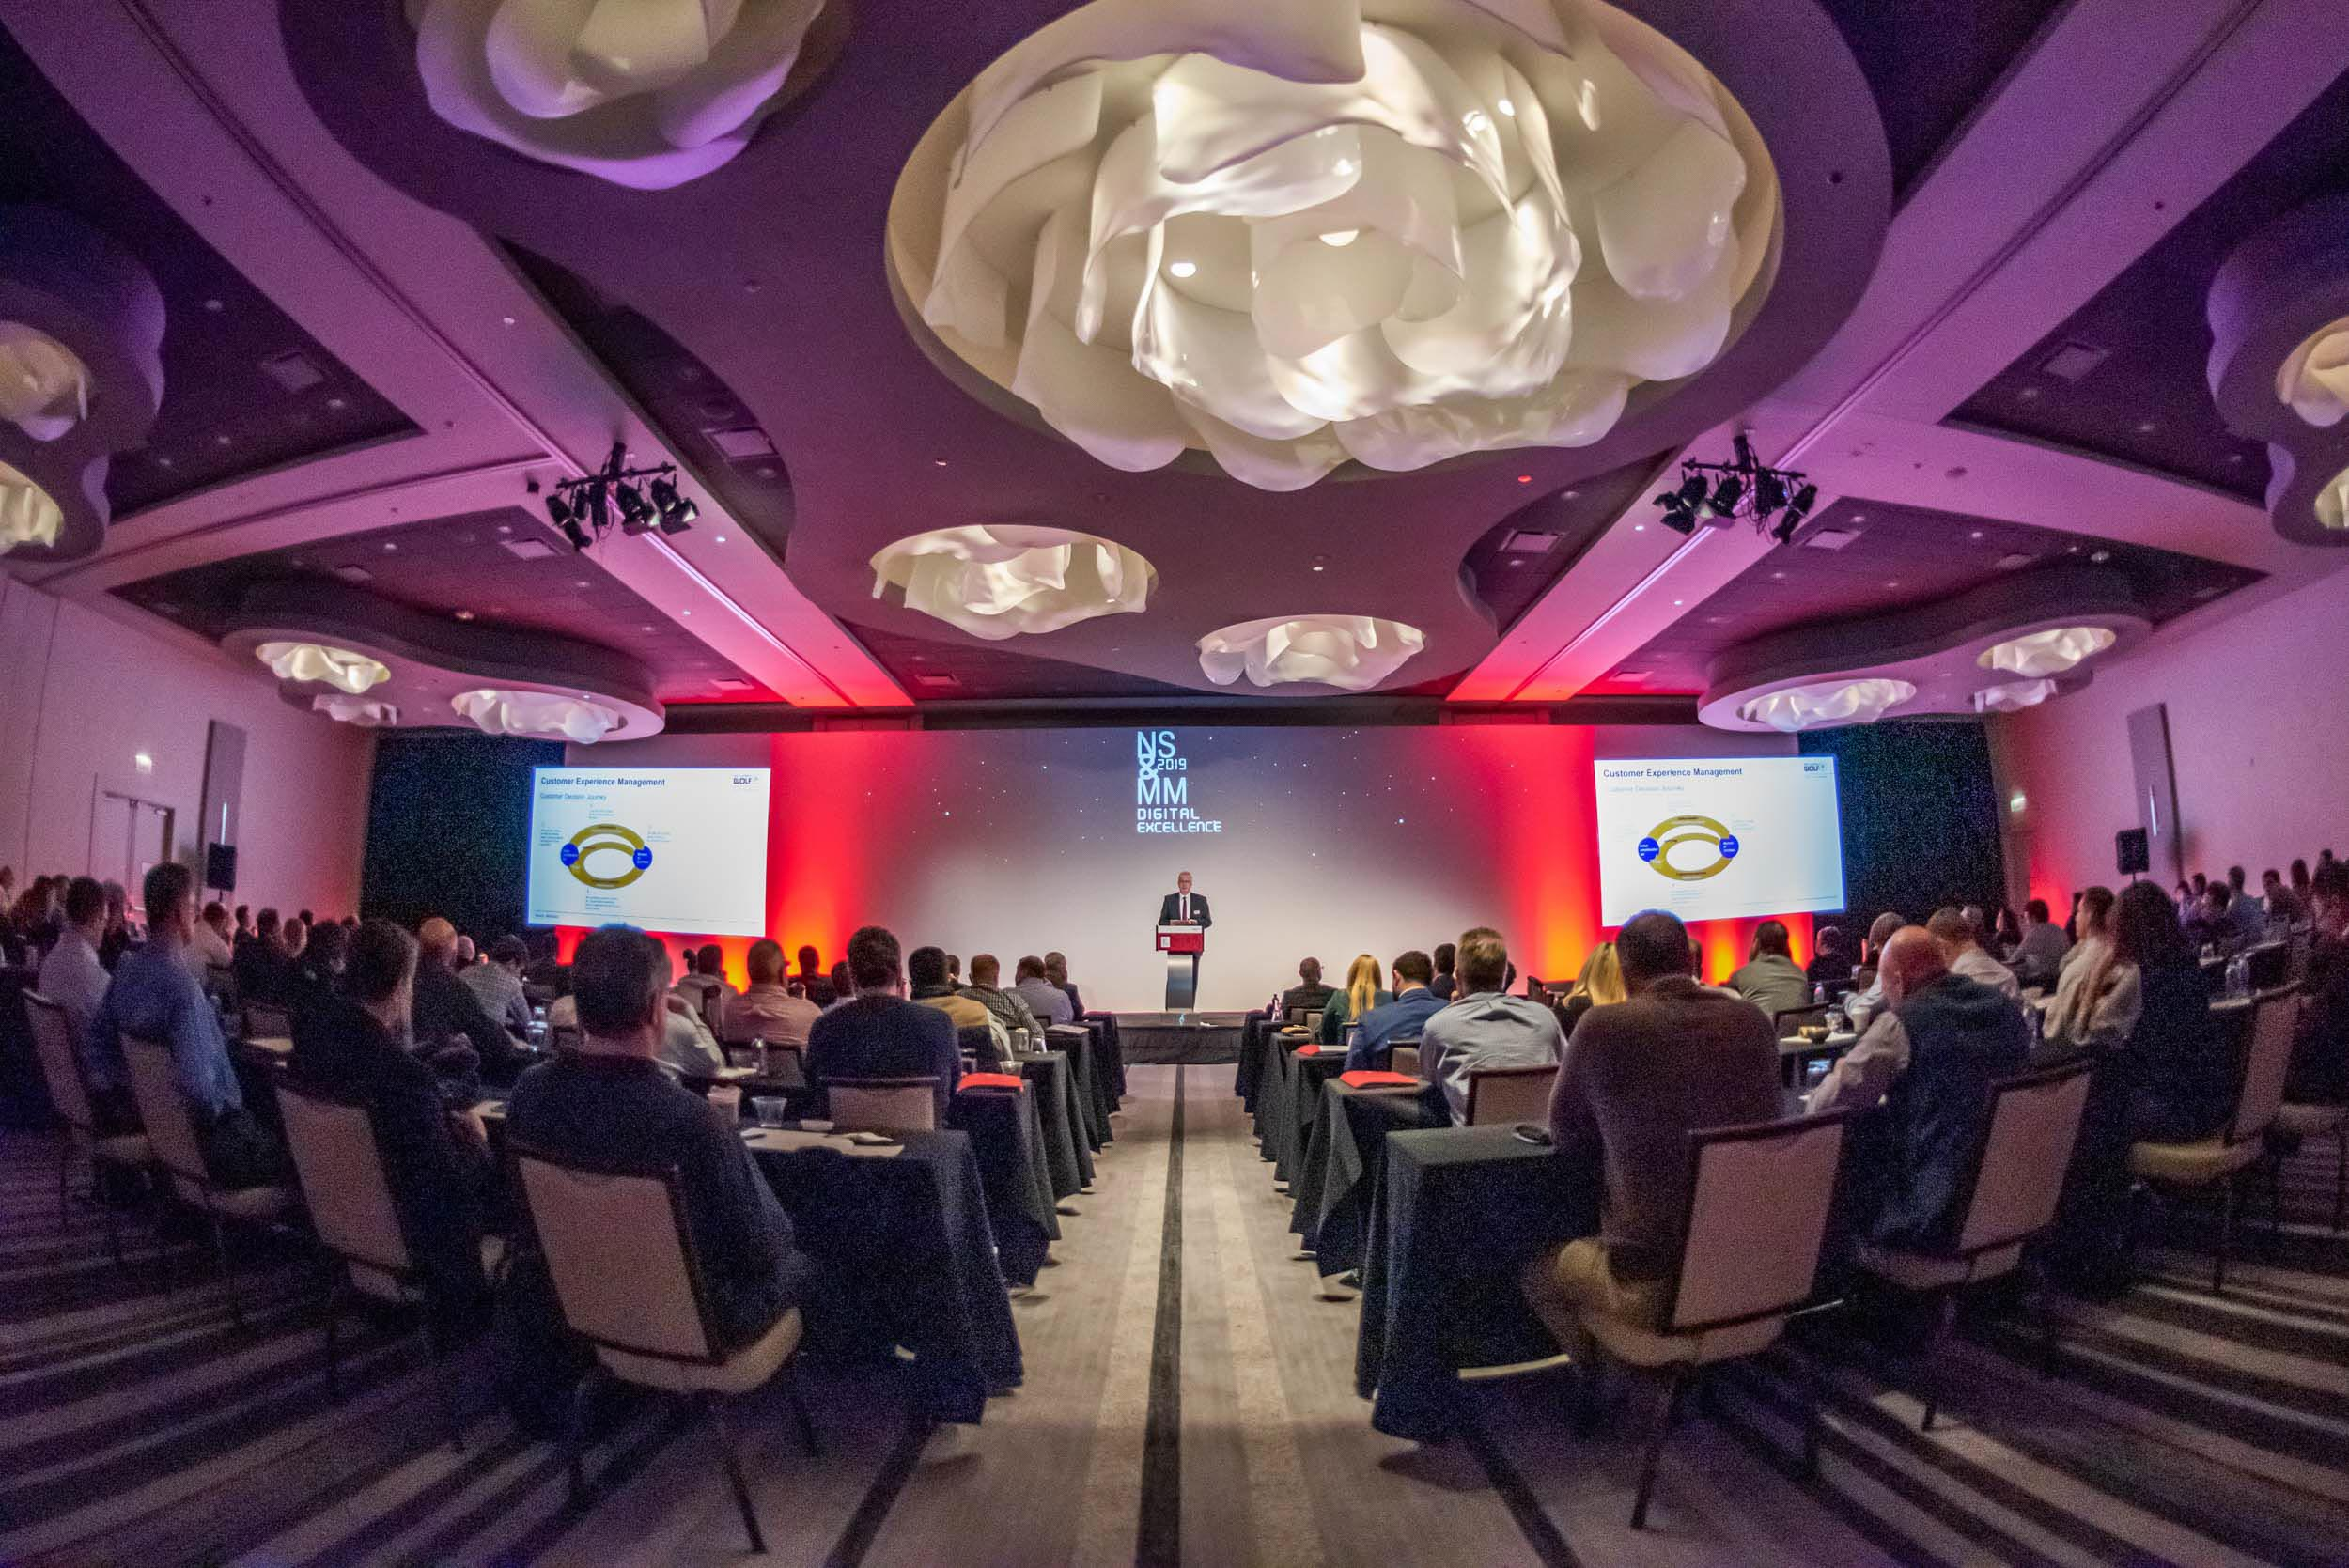 Annual Meeting - Richard Wolf's annual meeting included large-scale presentations, smaller breakout meetings, and even VR demonstrations! We were on hand to capture the action.